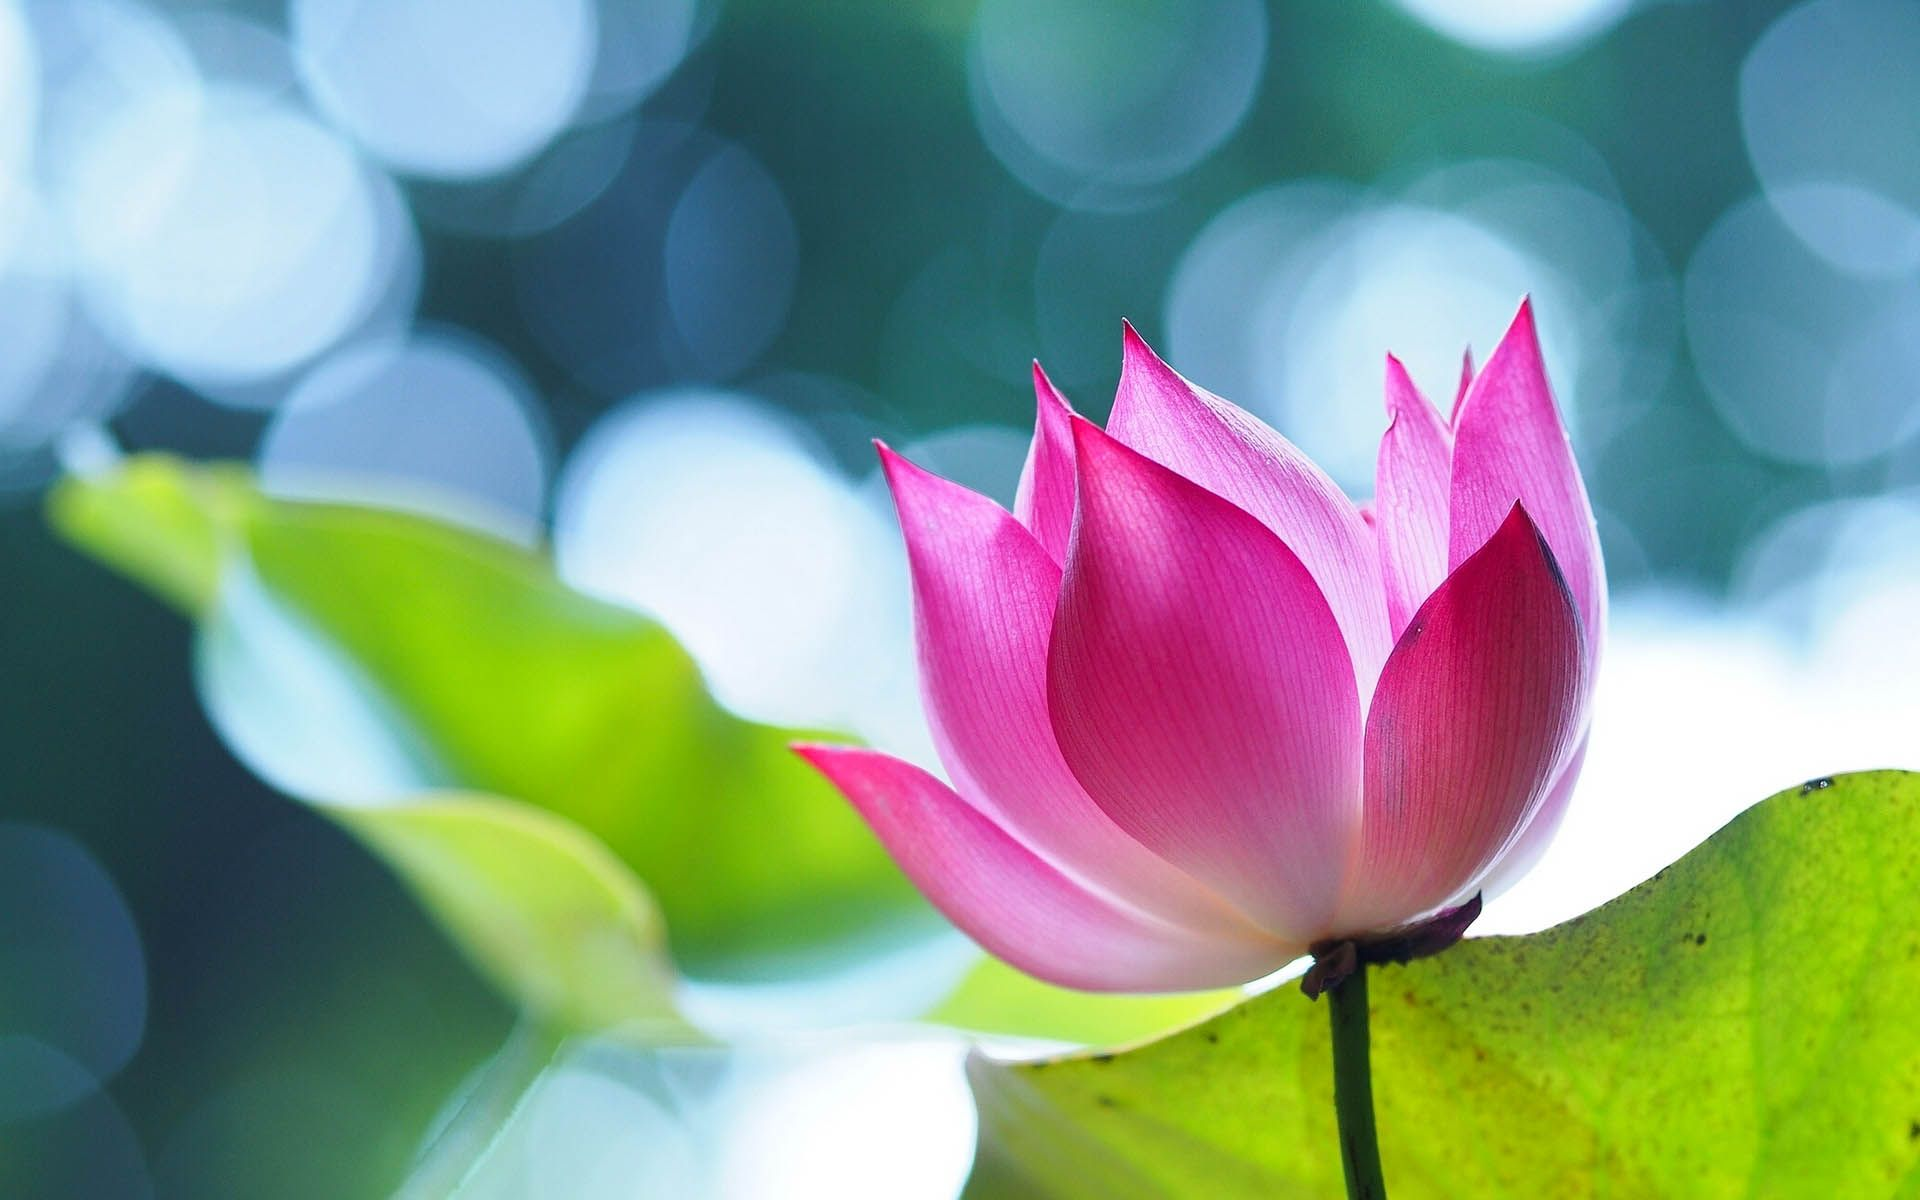 Lotus Flower Beautiful High Quality Hd Wallpapers Hd Wallpapers